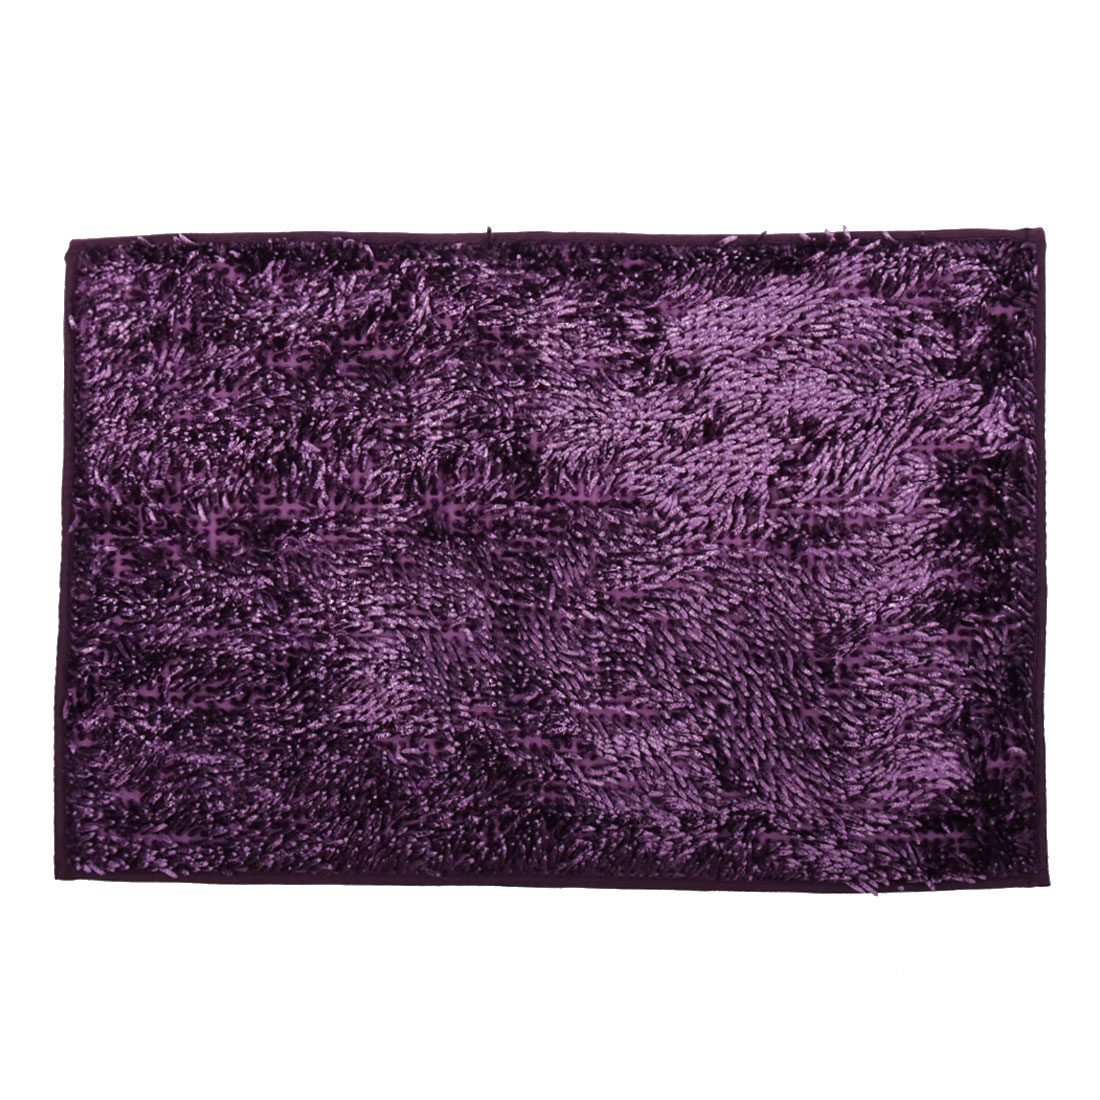 Traditional Slip Resistant Absorbent Carpet Bath Rug Mat Purple 32 x 20 Inches